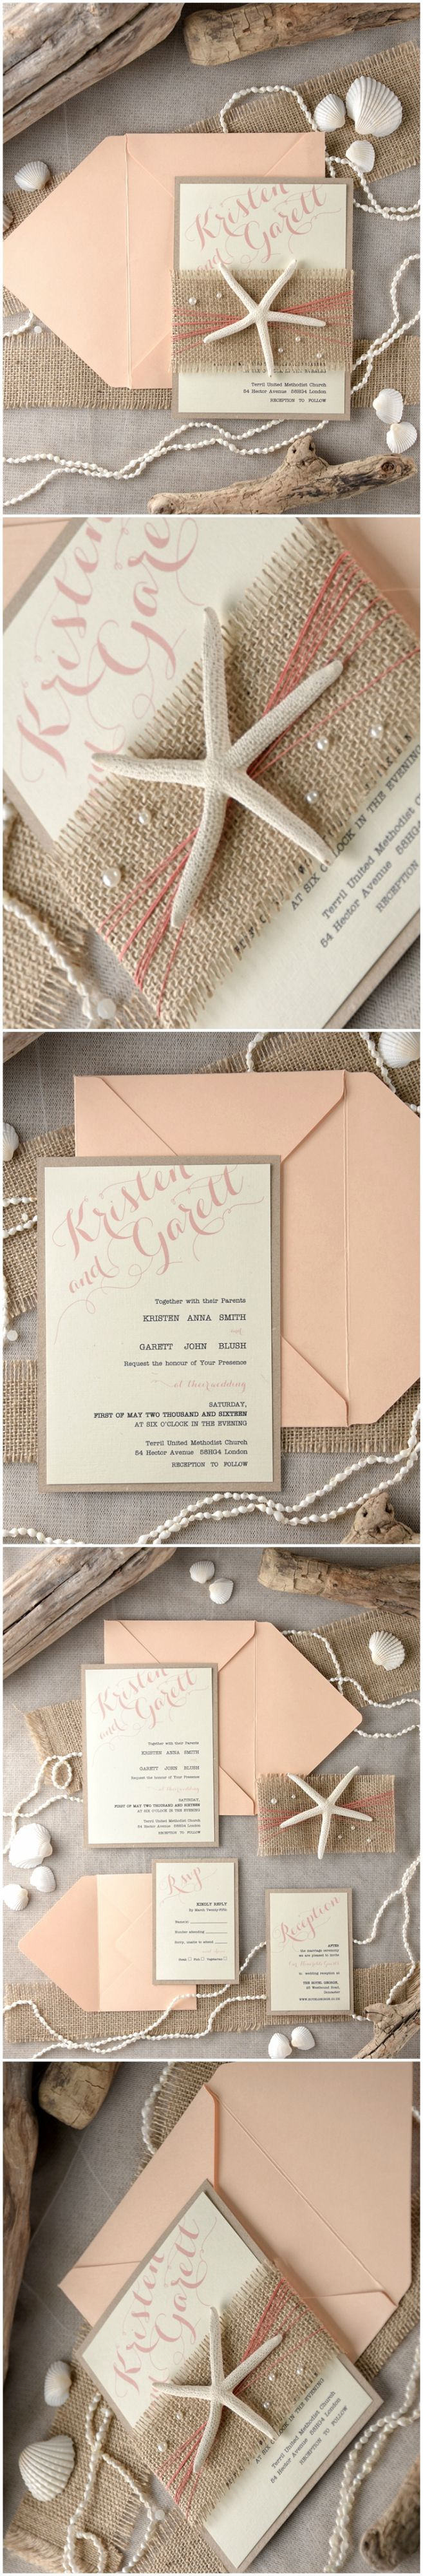 civil wedding invitation card%0A Fabulous starfish invitations for a beach wedding theme   Sandals Resorts  Weddings